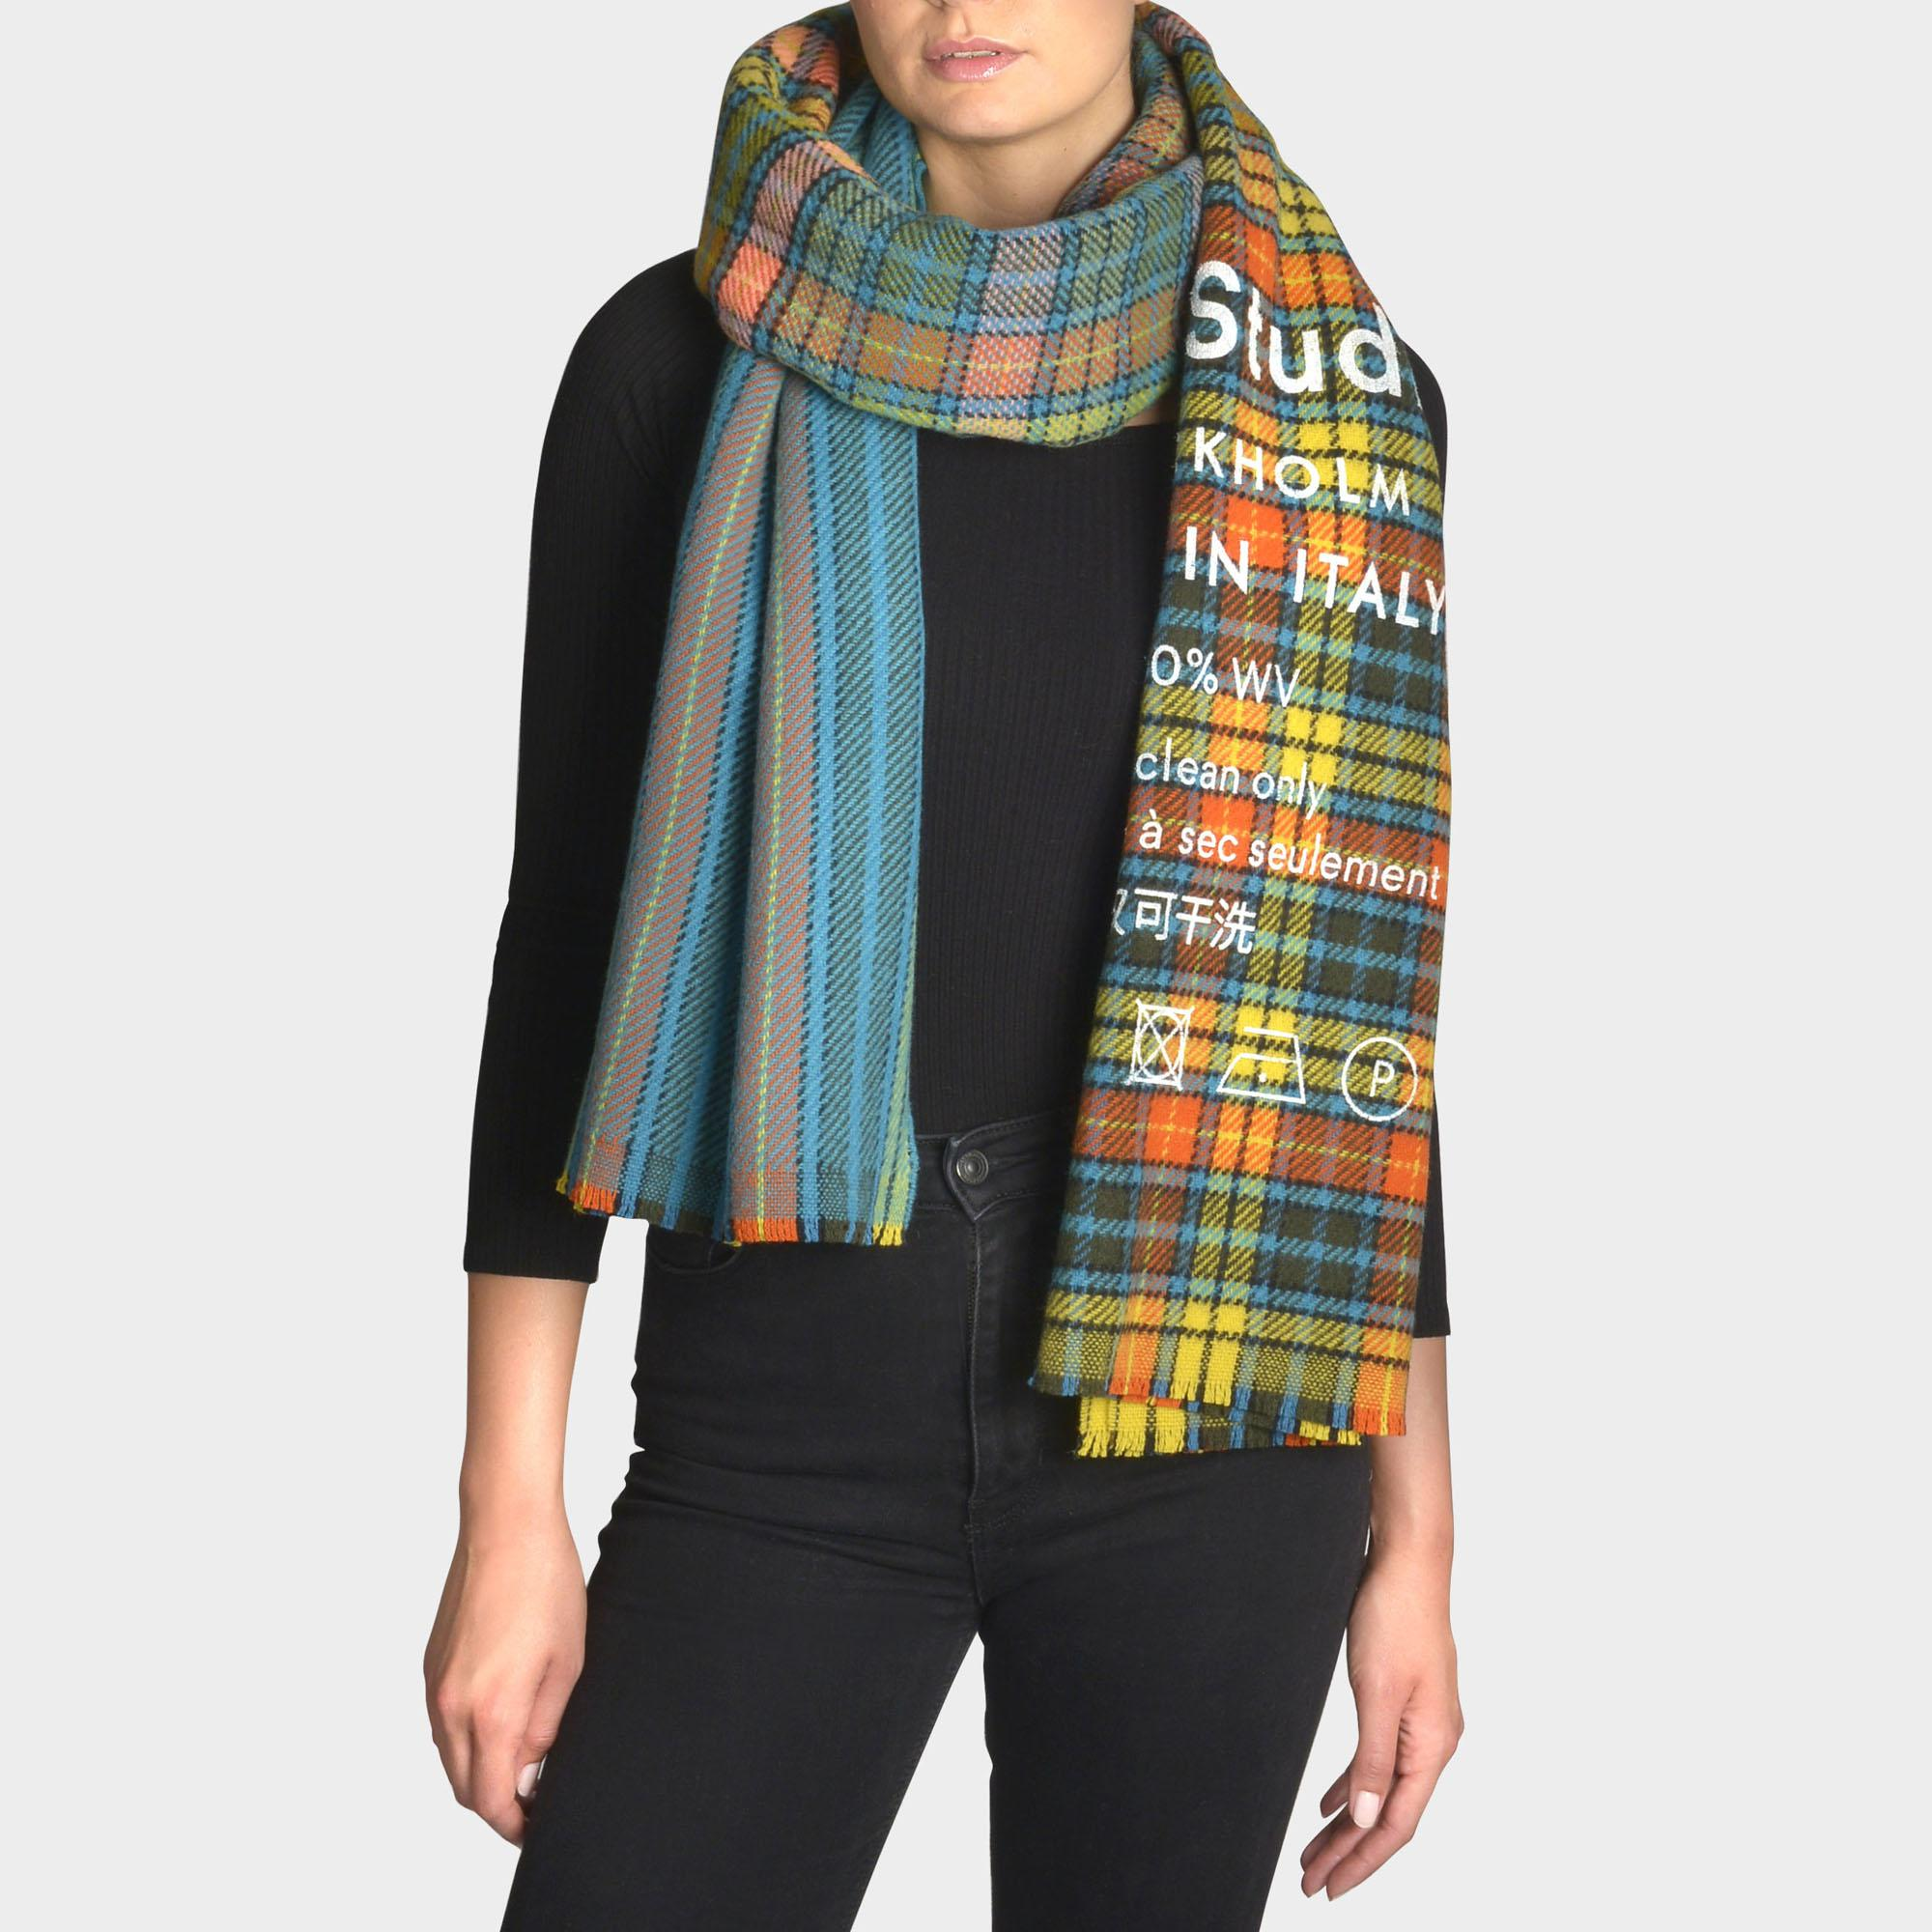 402a2b5d213 Acne Studios Cassiar Check Scarf In Blue And Beige Squares Wool - Lyst